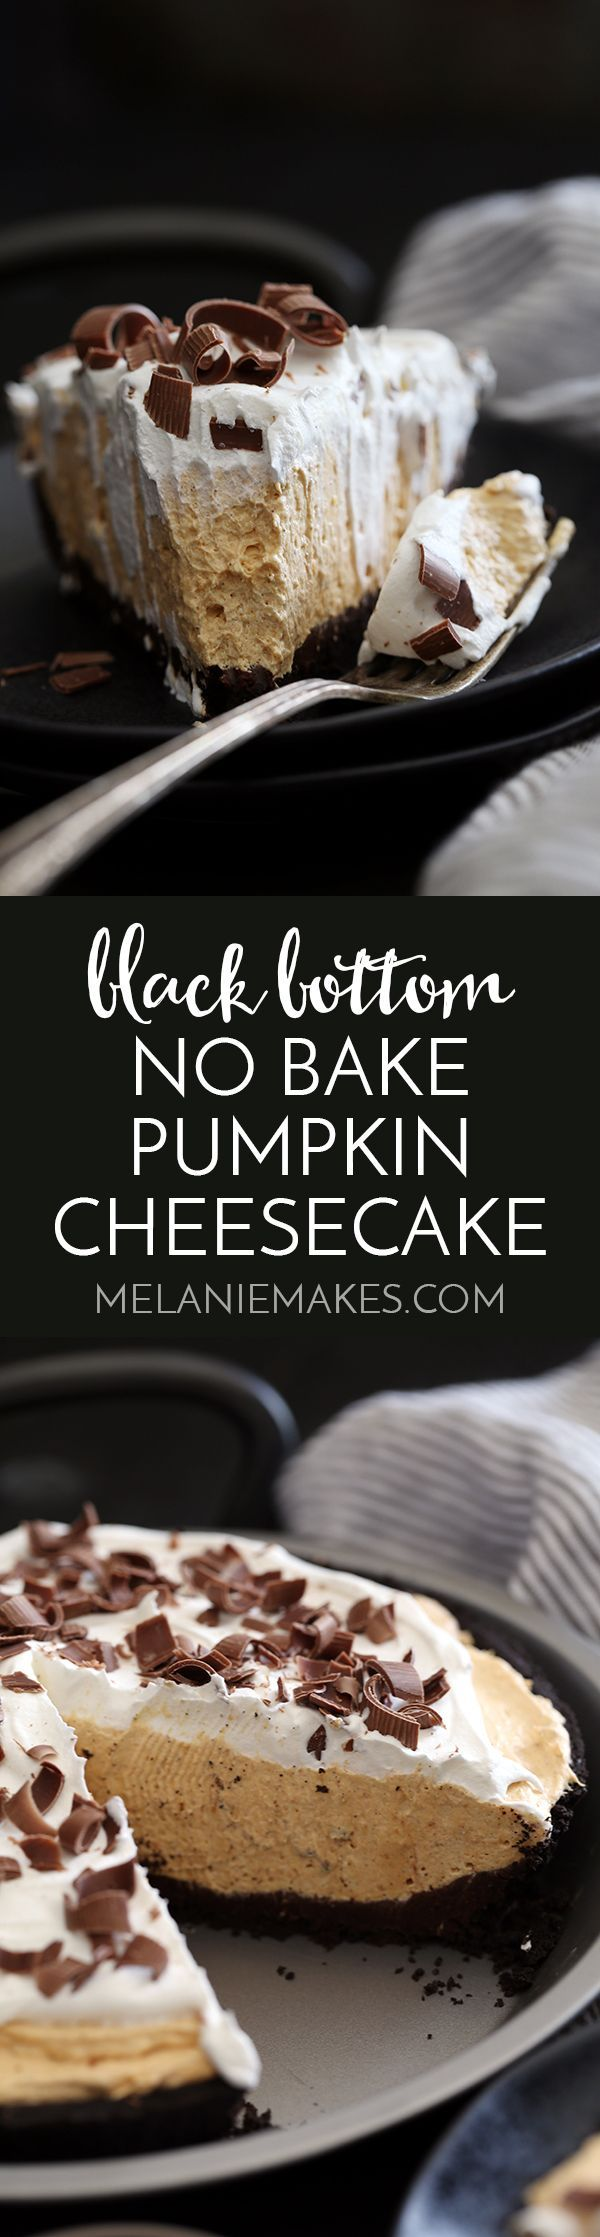 An Oreo crust is painted with a thick layer of chocolate ganache before being filled with a no bake pumpkin cheesecake filling spiked with cinnamon, nutmeg, cloves and ginger.  This Black Bottom No Bake Pumpkin Cheesecake is then topped with a cloud of whipped topping and showered with chocolate curls before being sliced and served to what will no doubt be an adoring crowd.